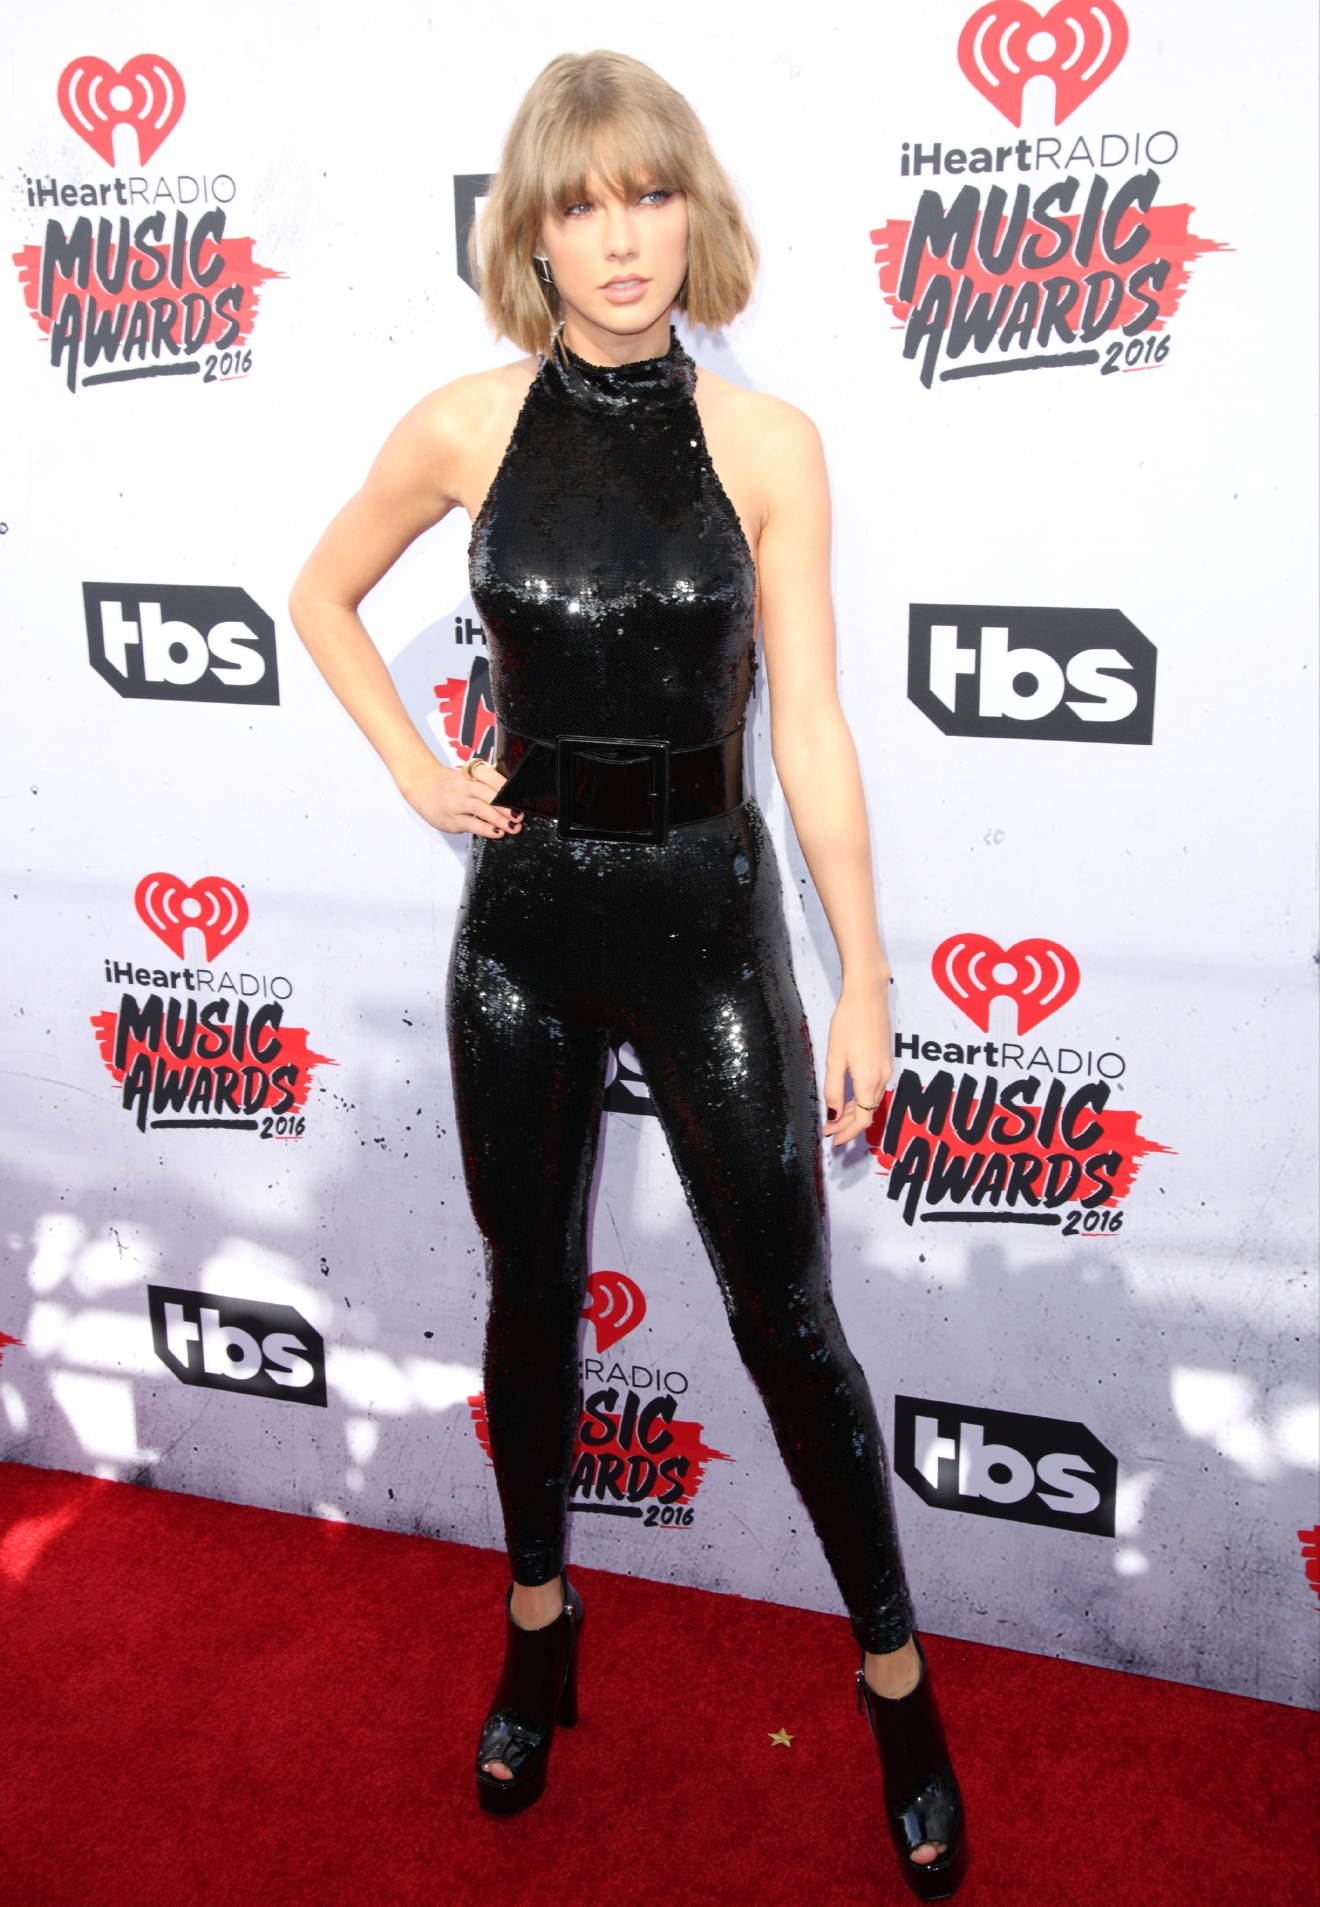 Celebrities attend iHeartRadio Music Awards at The Forum on April 4, 2016. (Brian To/WENN.com)